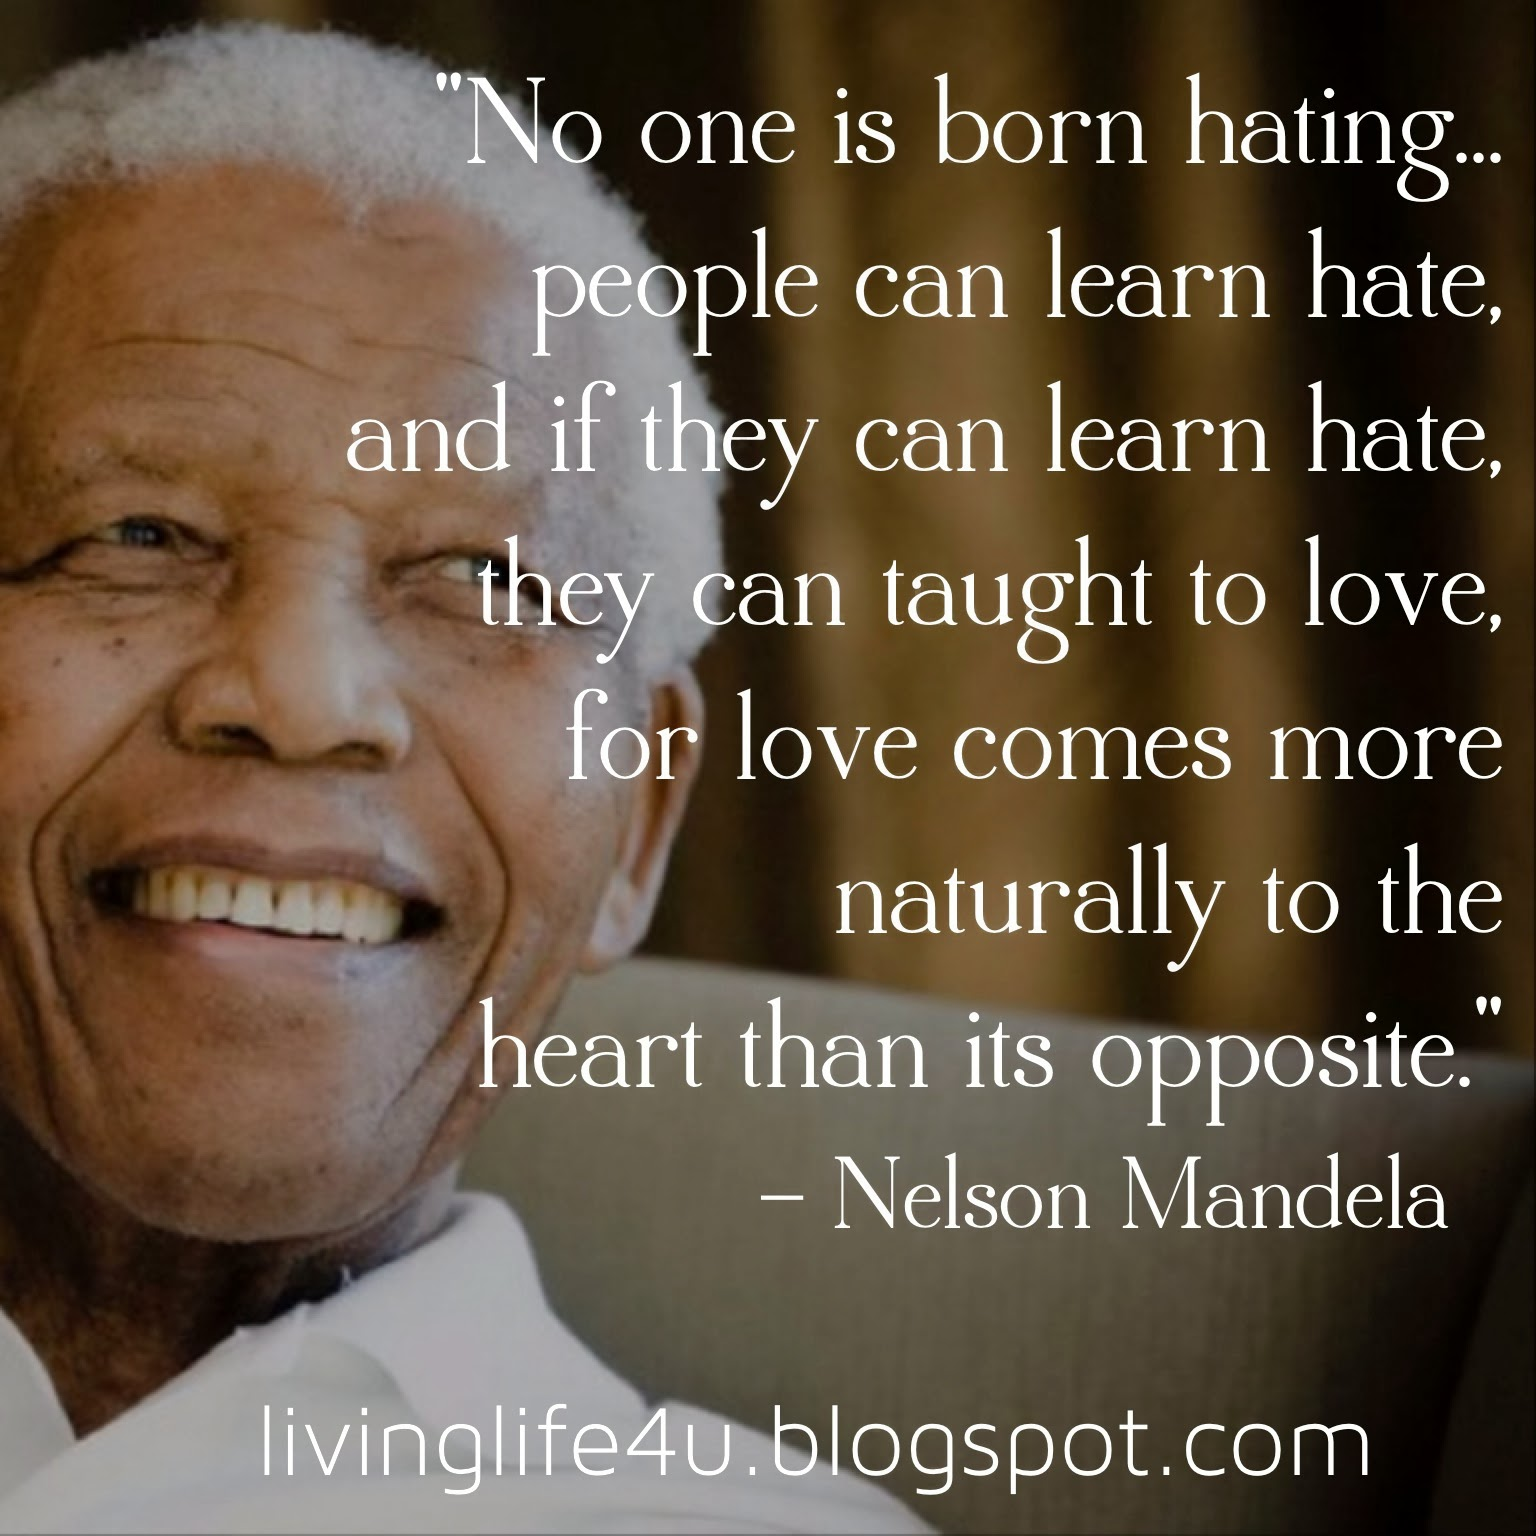 Famous Quotes Of Nelson Mandela: Nelson Mandela Quotes About Hate. QuotesGram